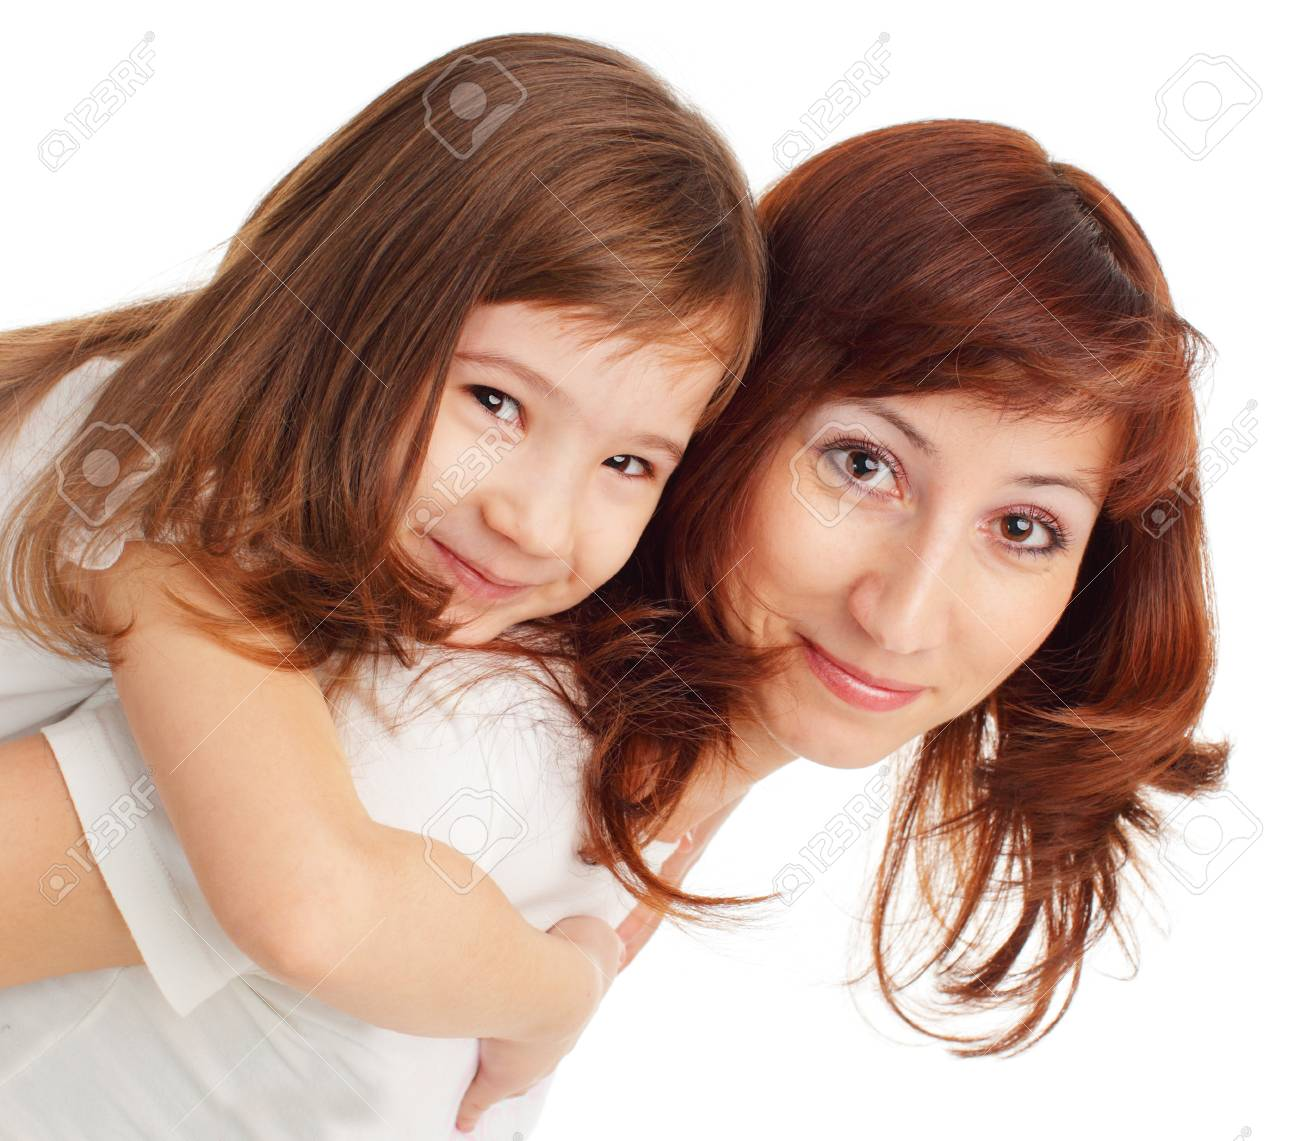 Mother with daughter isolated on white Stock Photo - 10297562